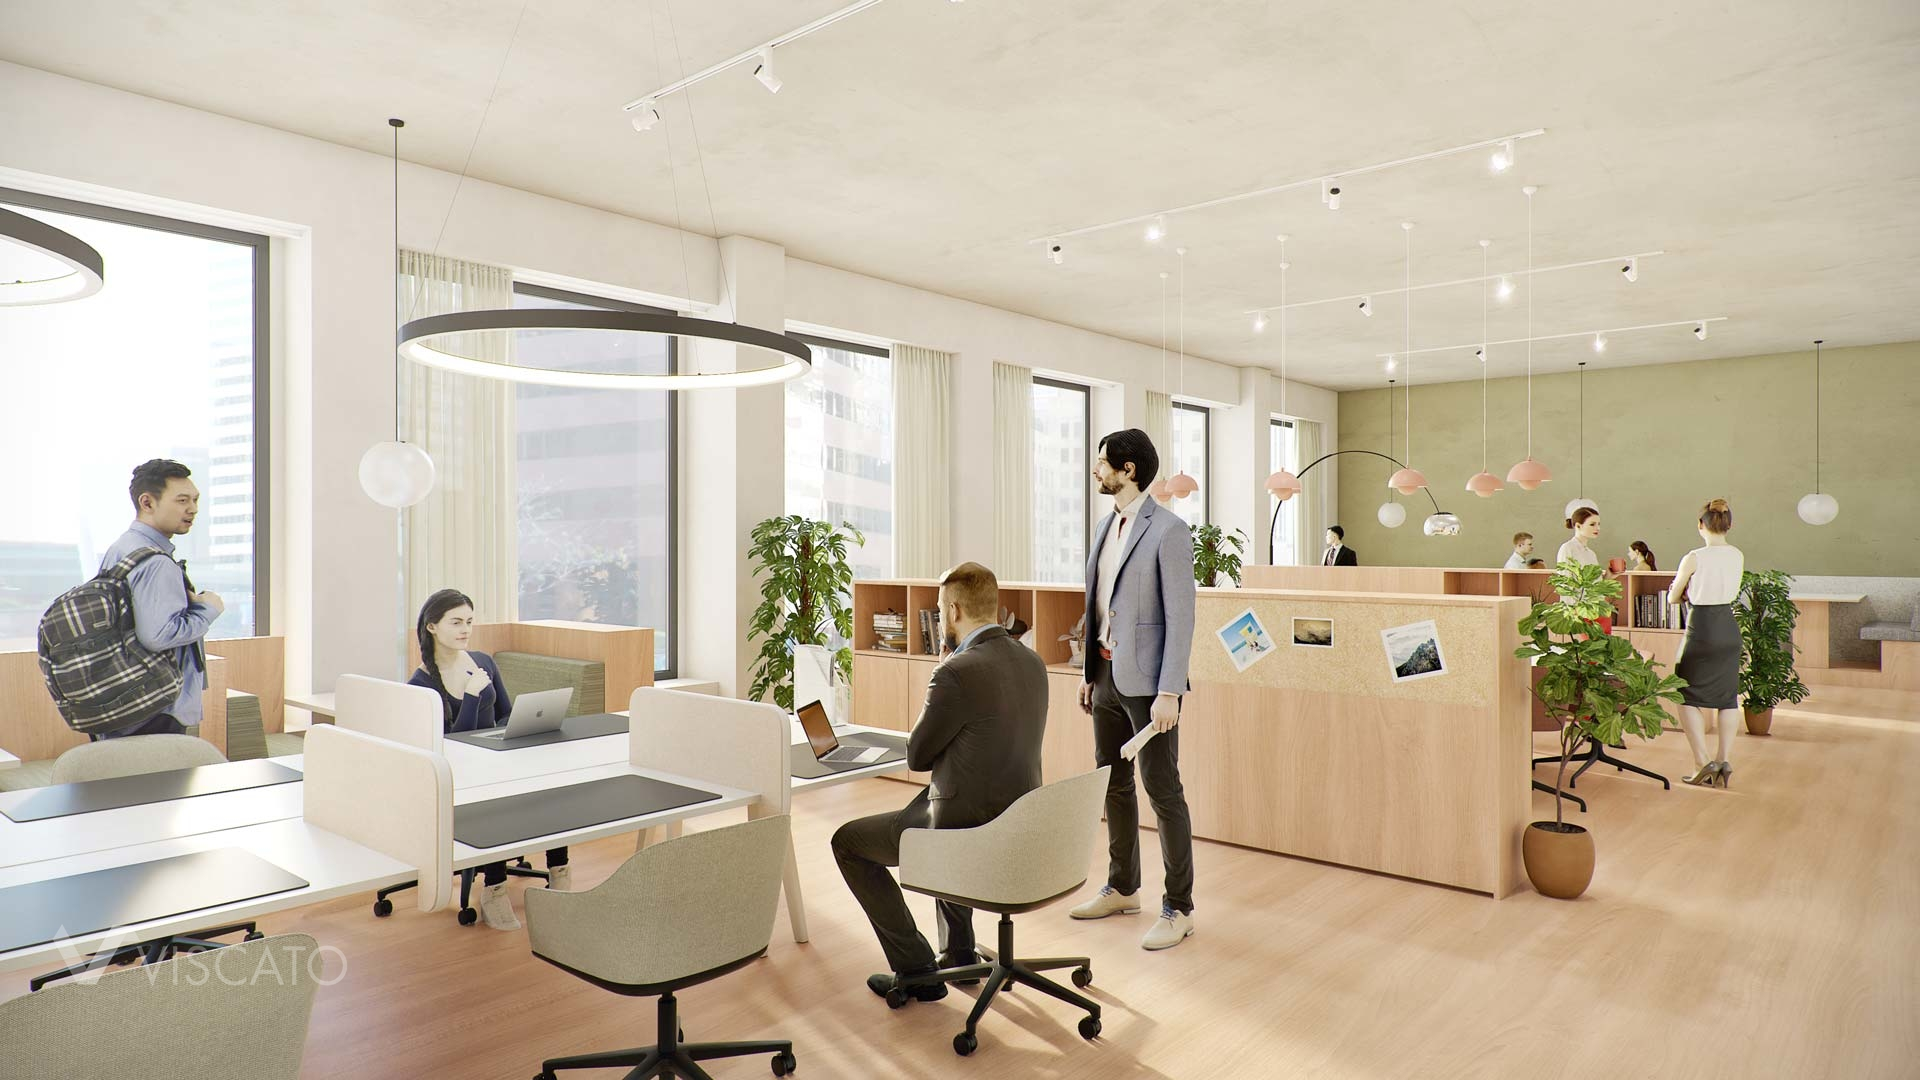 Open space Office, 3d